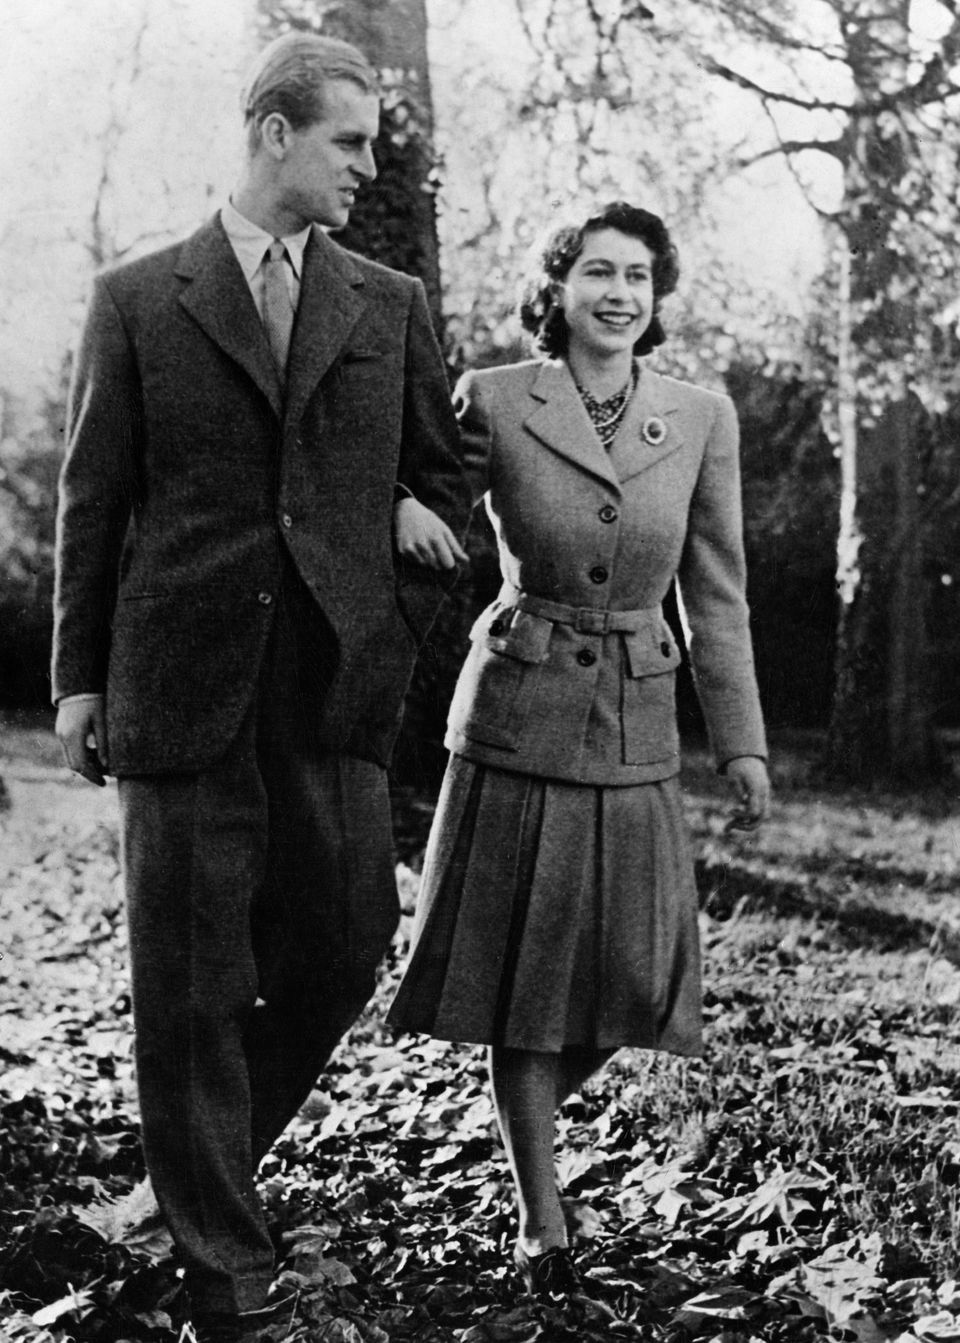 The Queen and the Duke of Edinburgh spent much of their winter honeymoon in Broadlands,